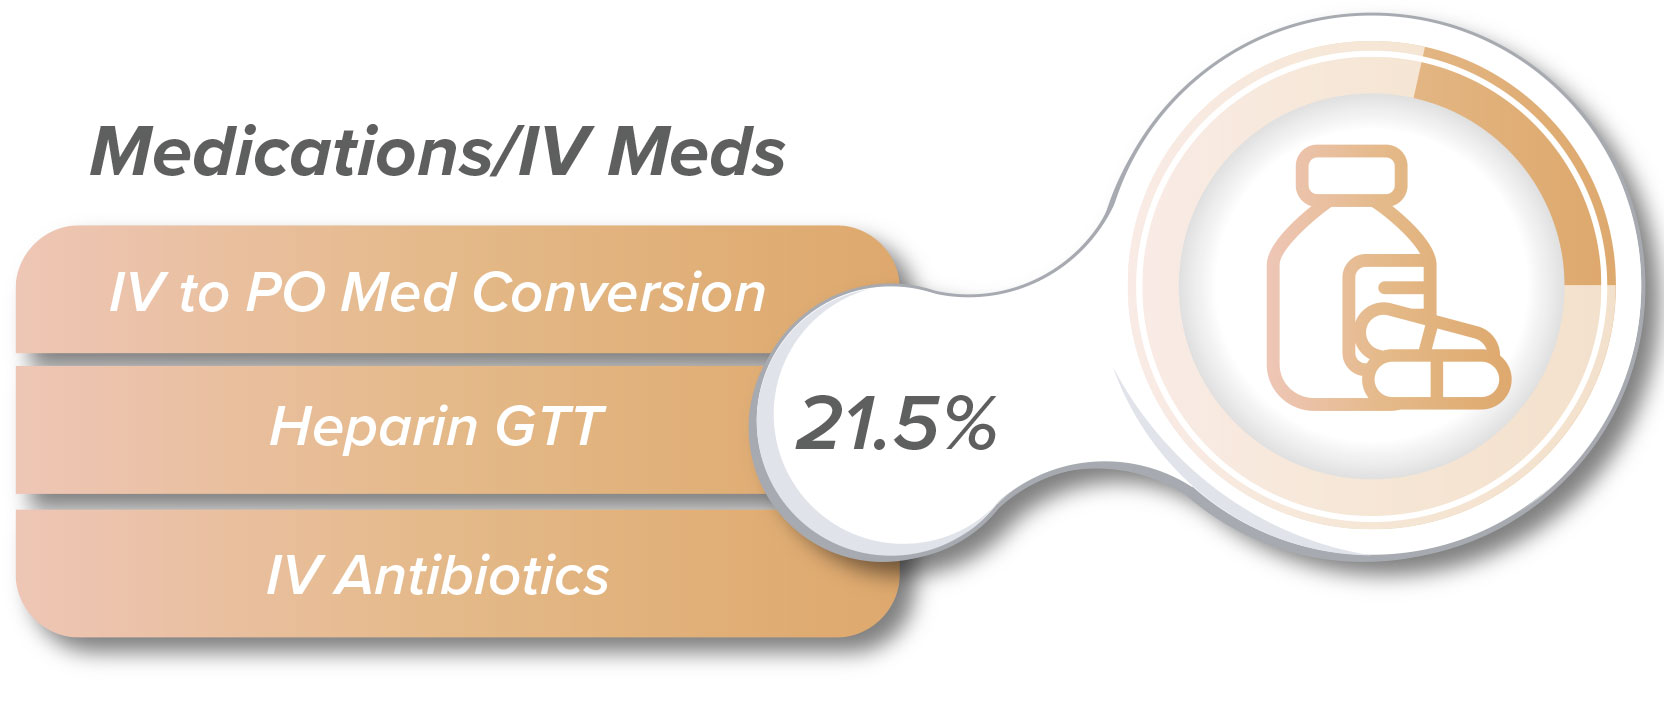 Medications/IV Meds include delays like IV to PO Conversion, Heparin GTT, and IV Antibiotics.